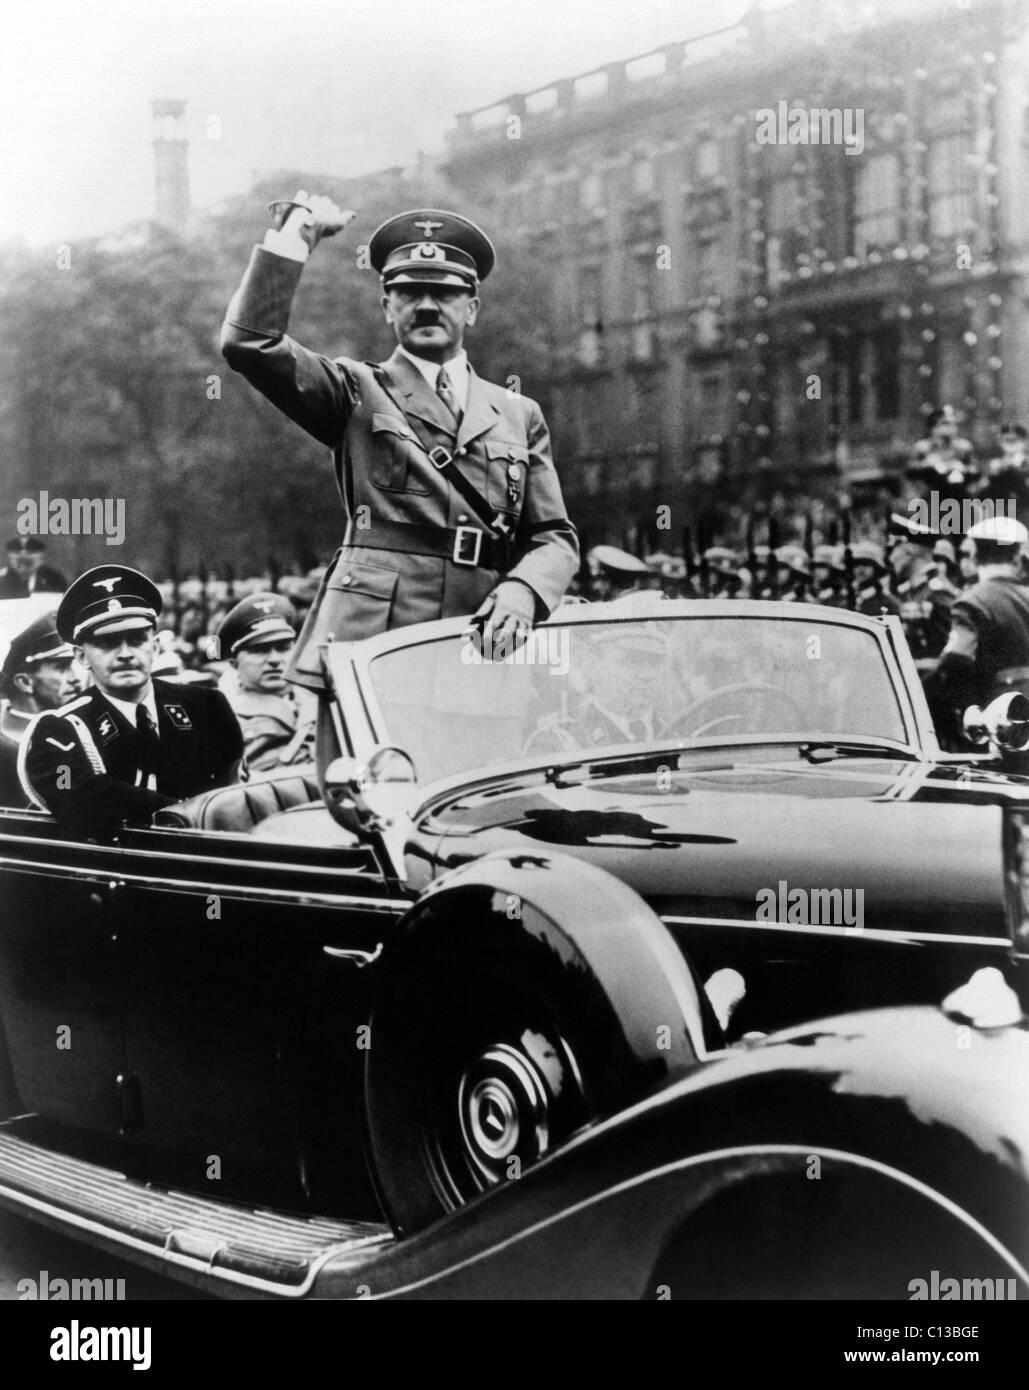 Adolf Hitler, ca. late 1930s-early 40s - Stock Image